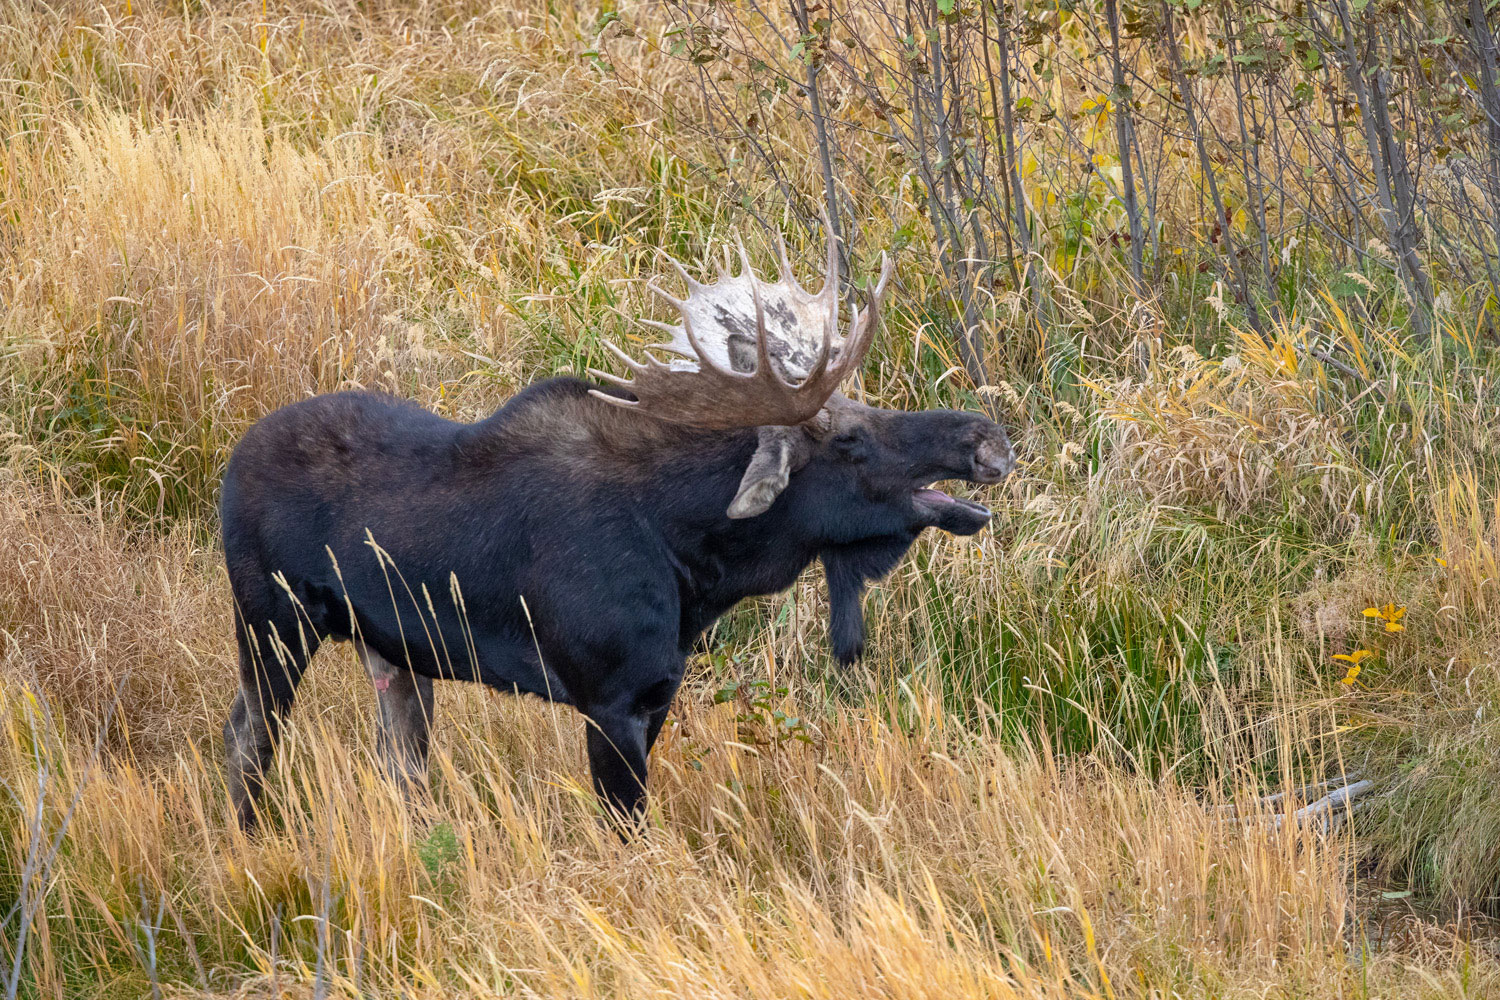 A bull moose calls for a cow moose on the other side of a nearby pond.